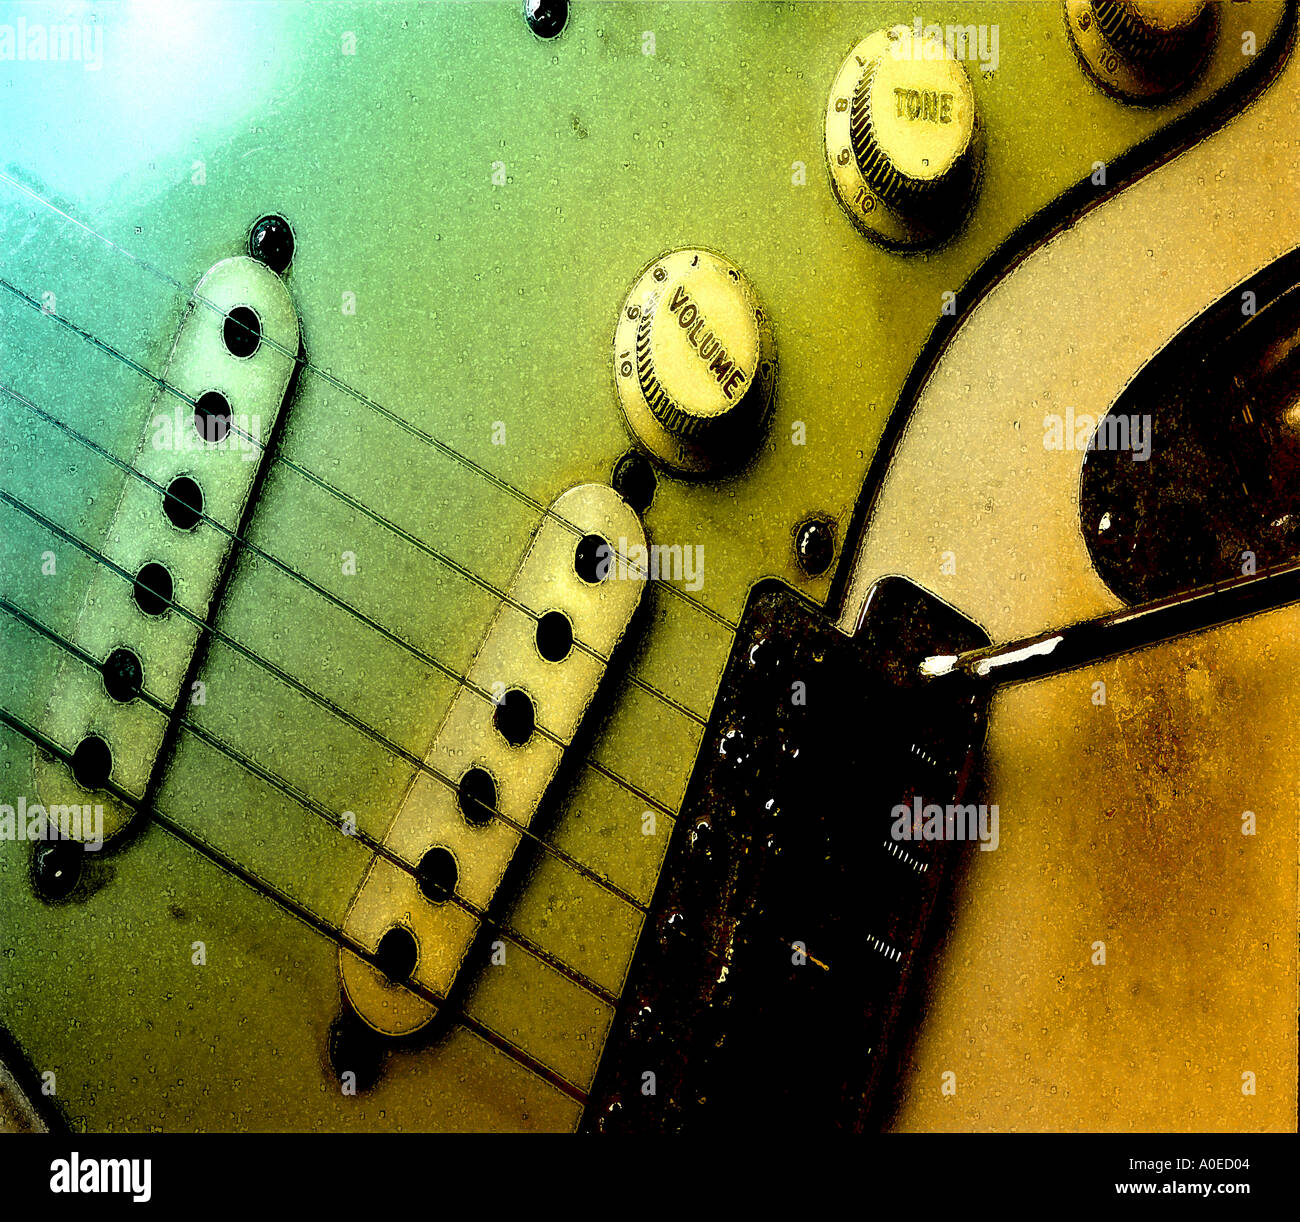 Stratocaster - Stock Image